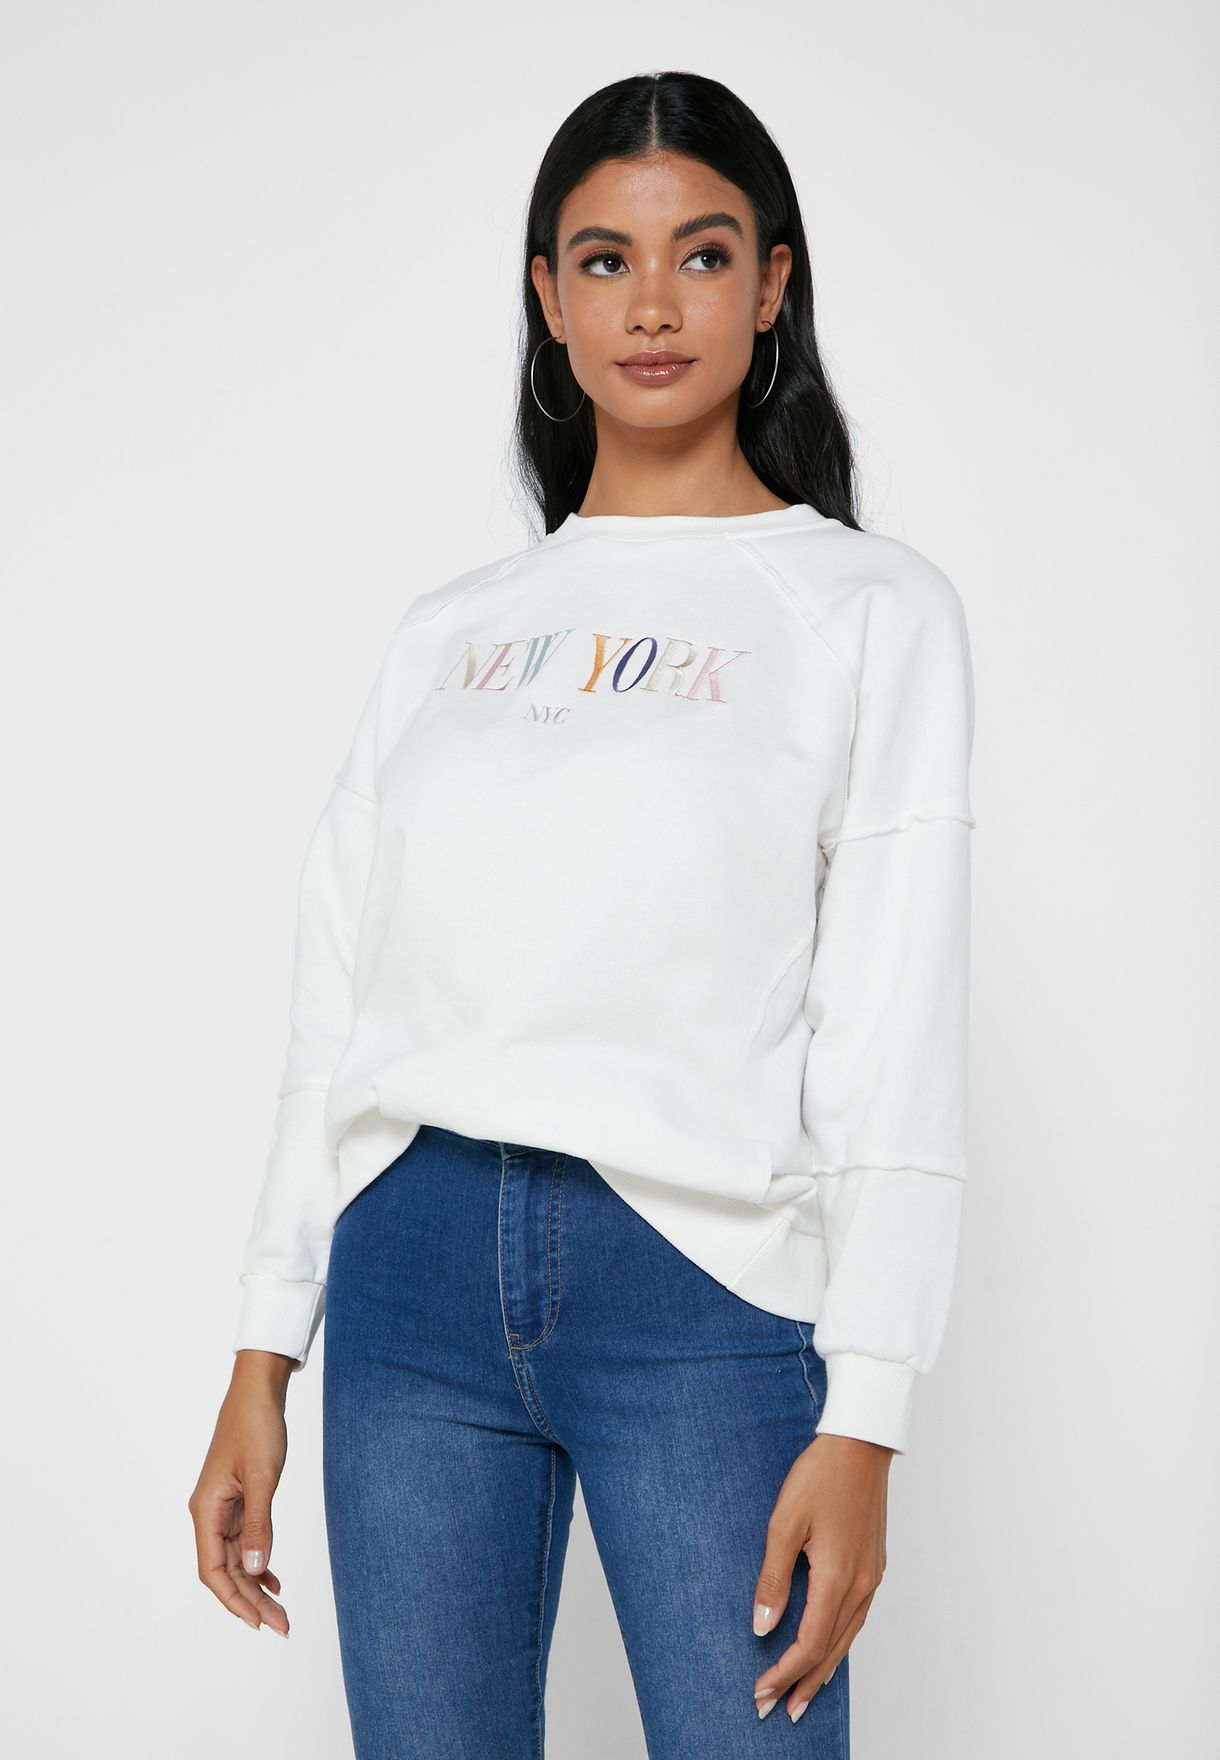 New York Embroidered Sweater